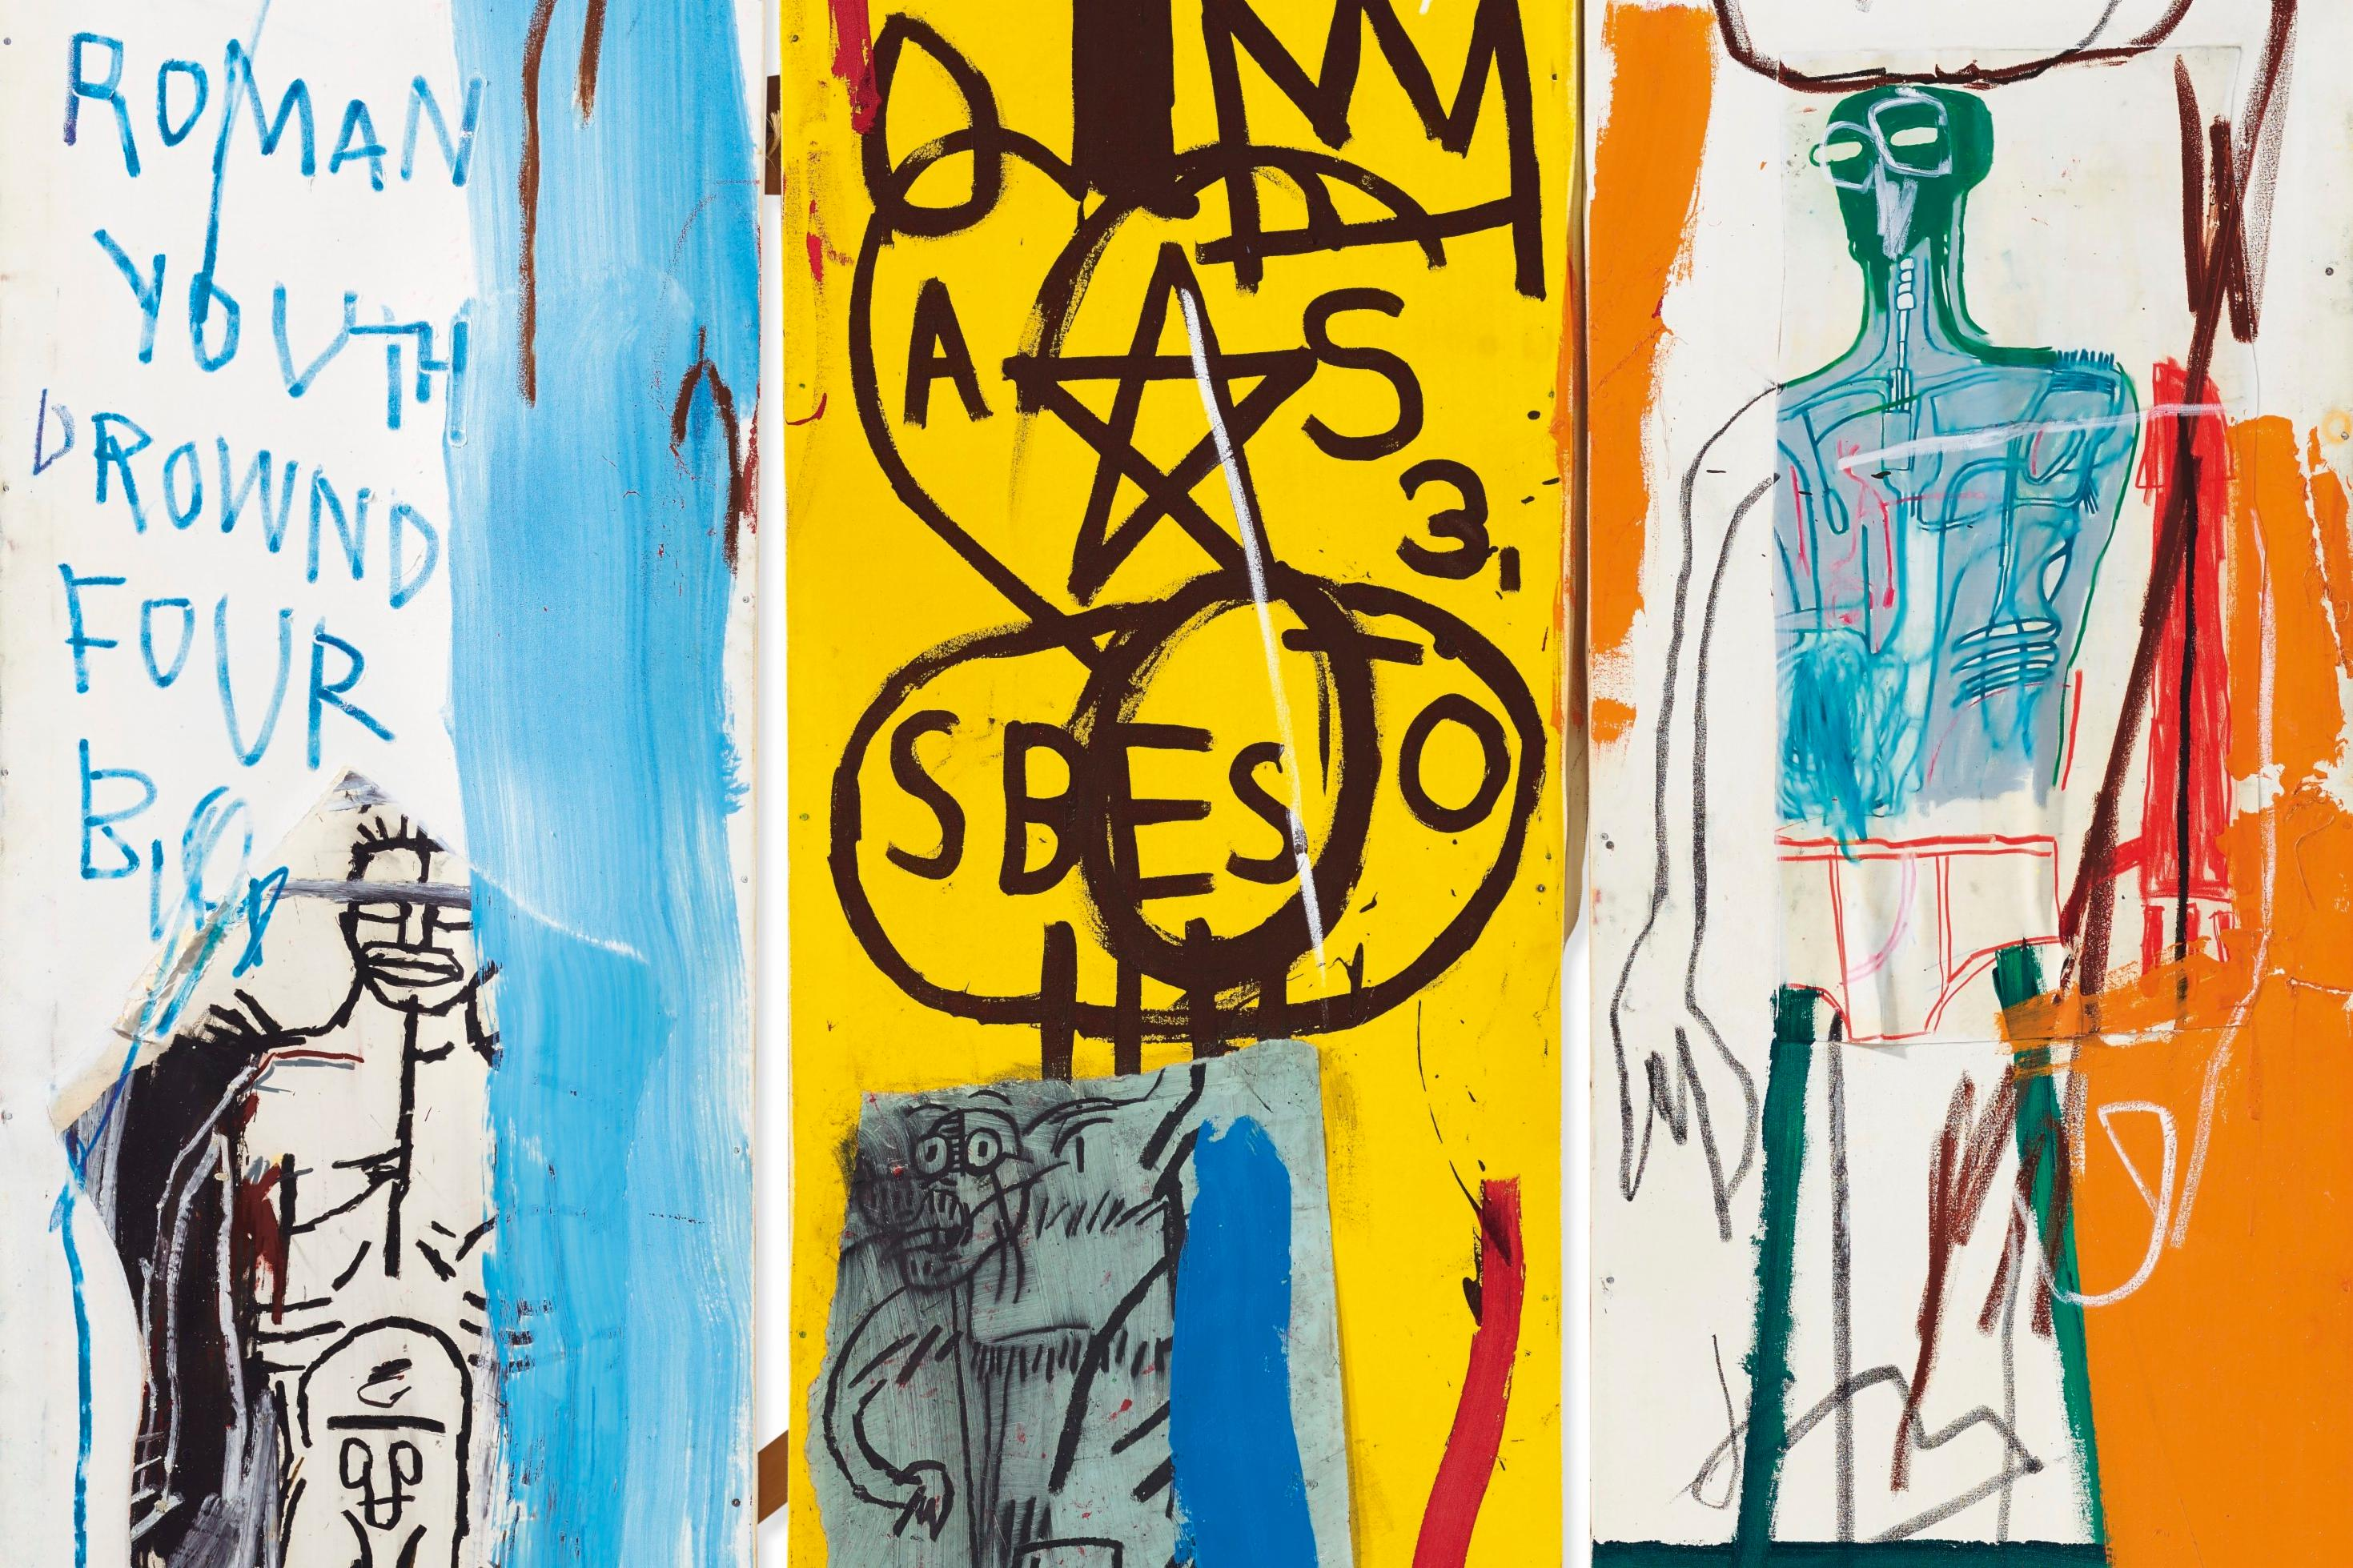 $9.1-Million Basquiat Leads Subdued Sale at Christie's in London